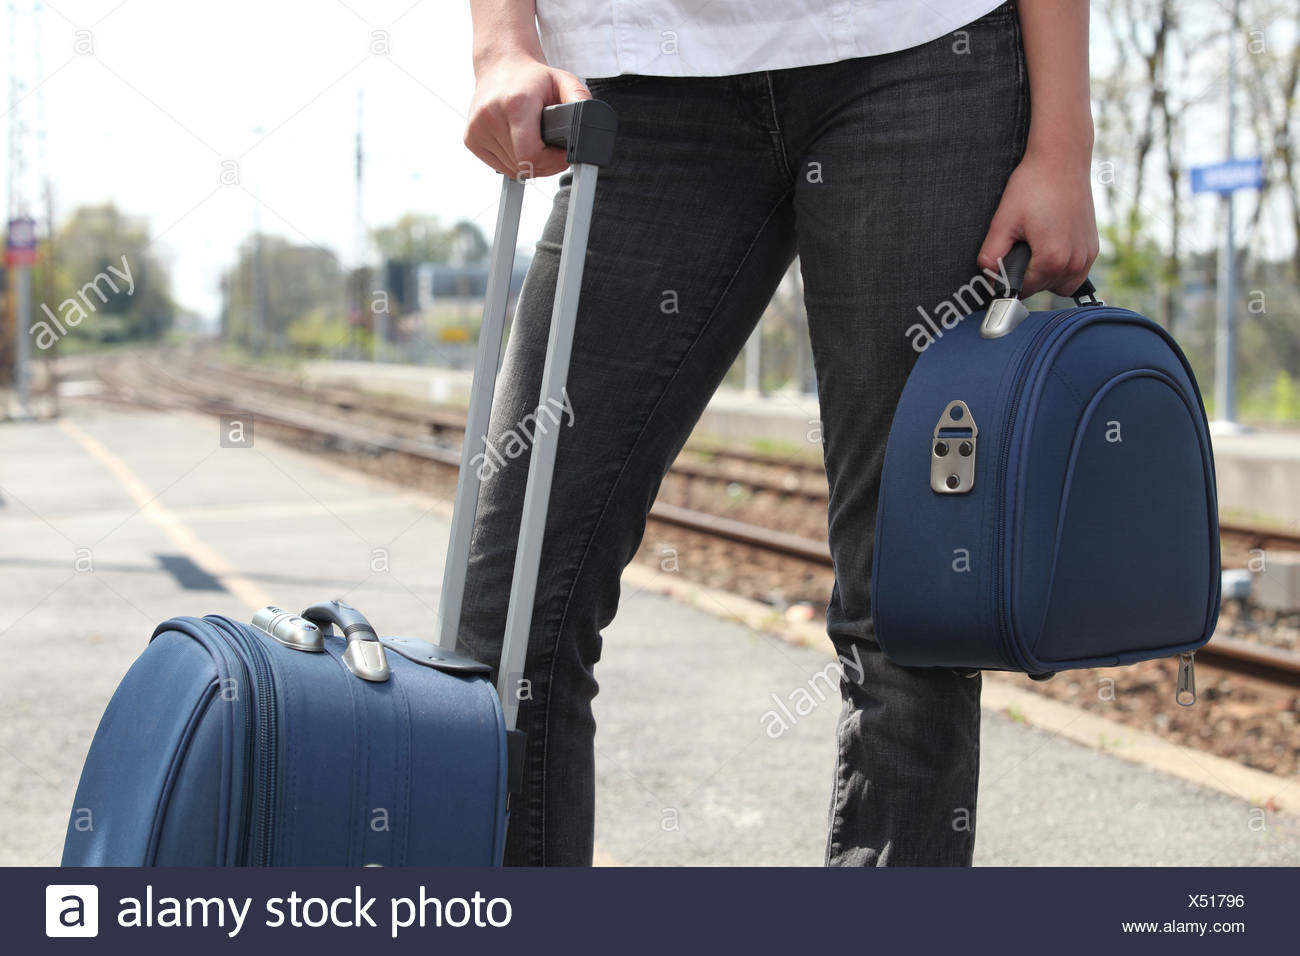 a man with luggage waiting for the train - Stock Image